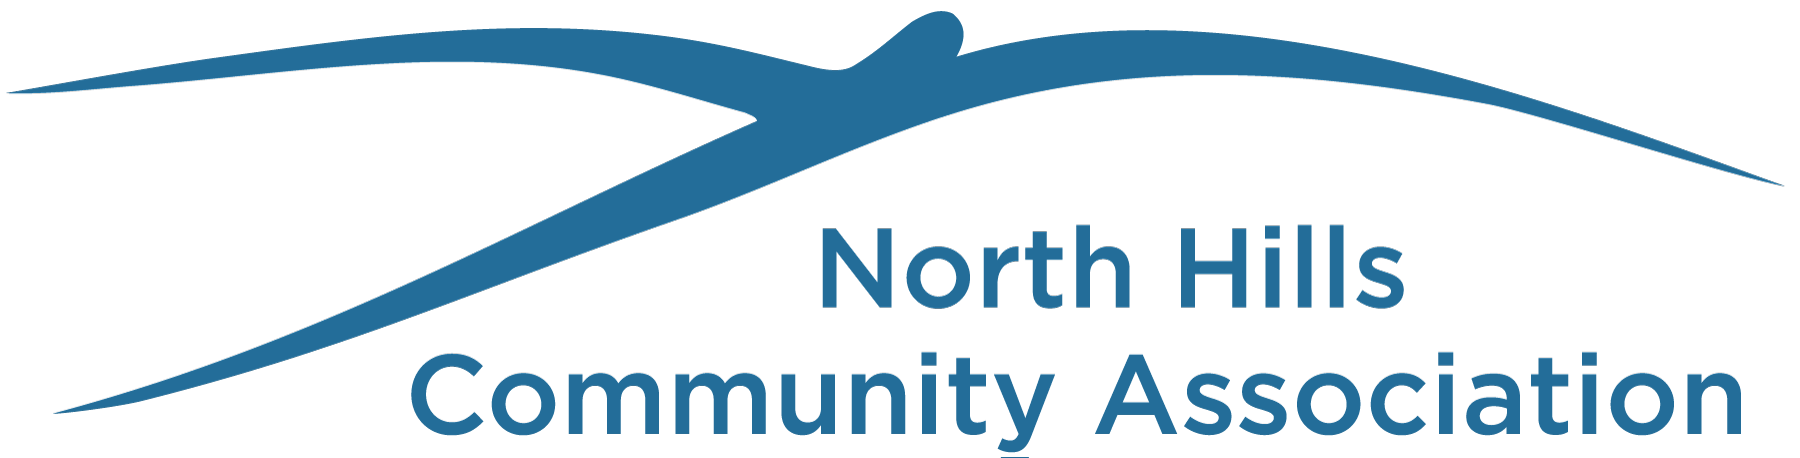 North Hills Community Association Logo